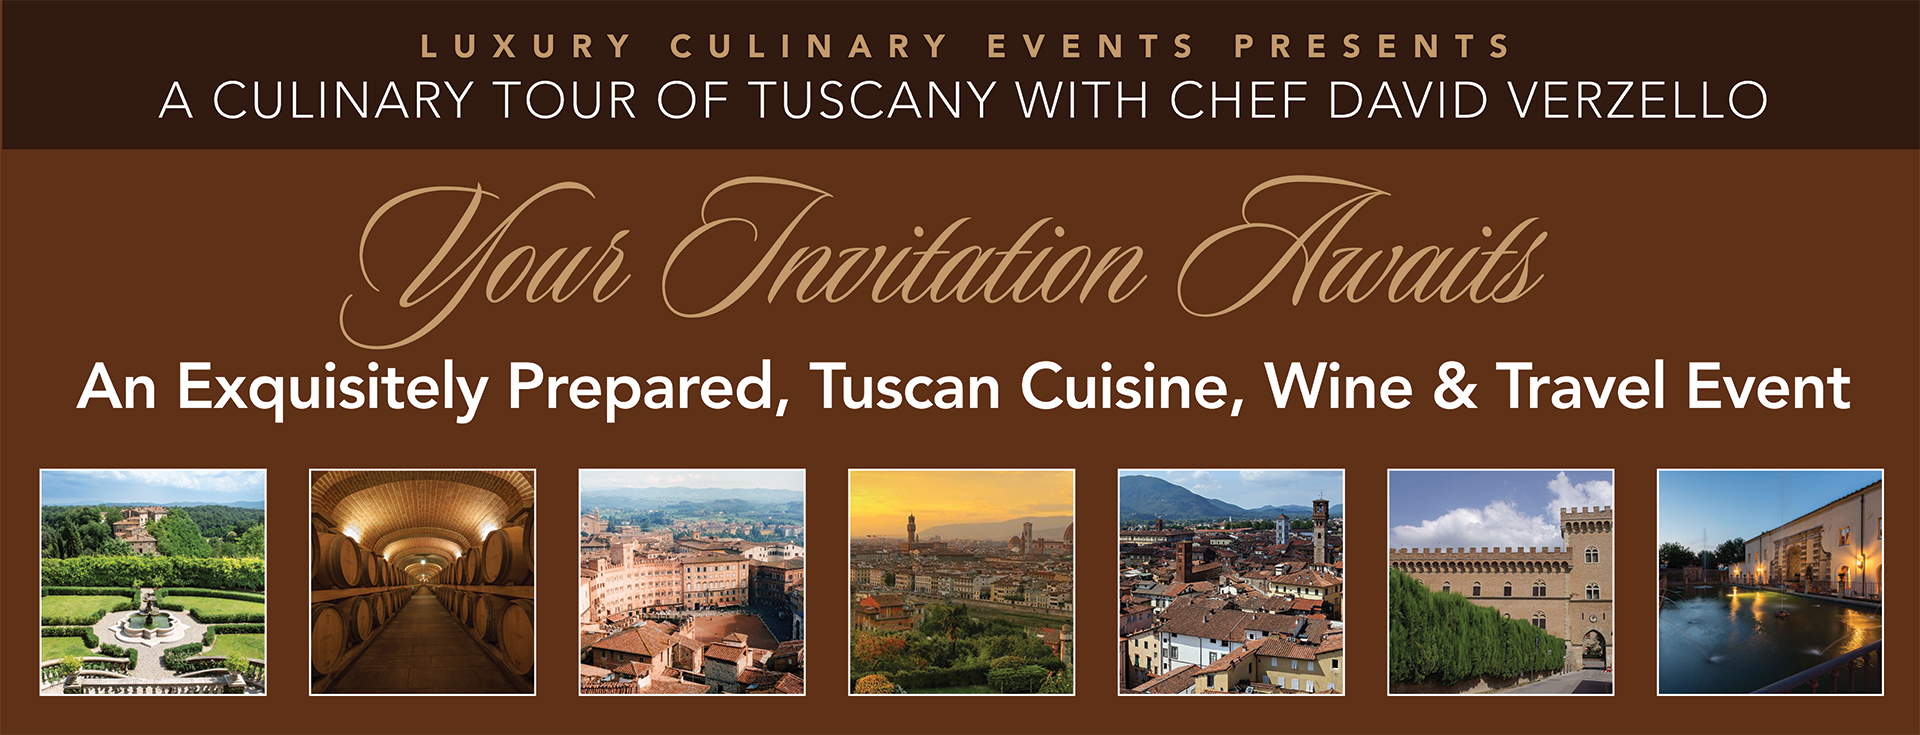 A Culinary Tour of Tuscany April 27 – May 3, 2020